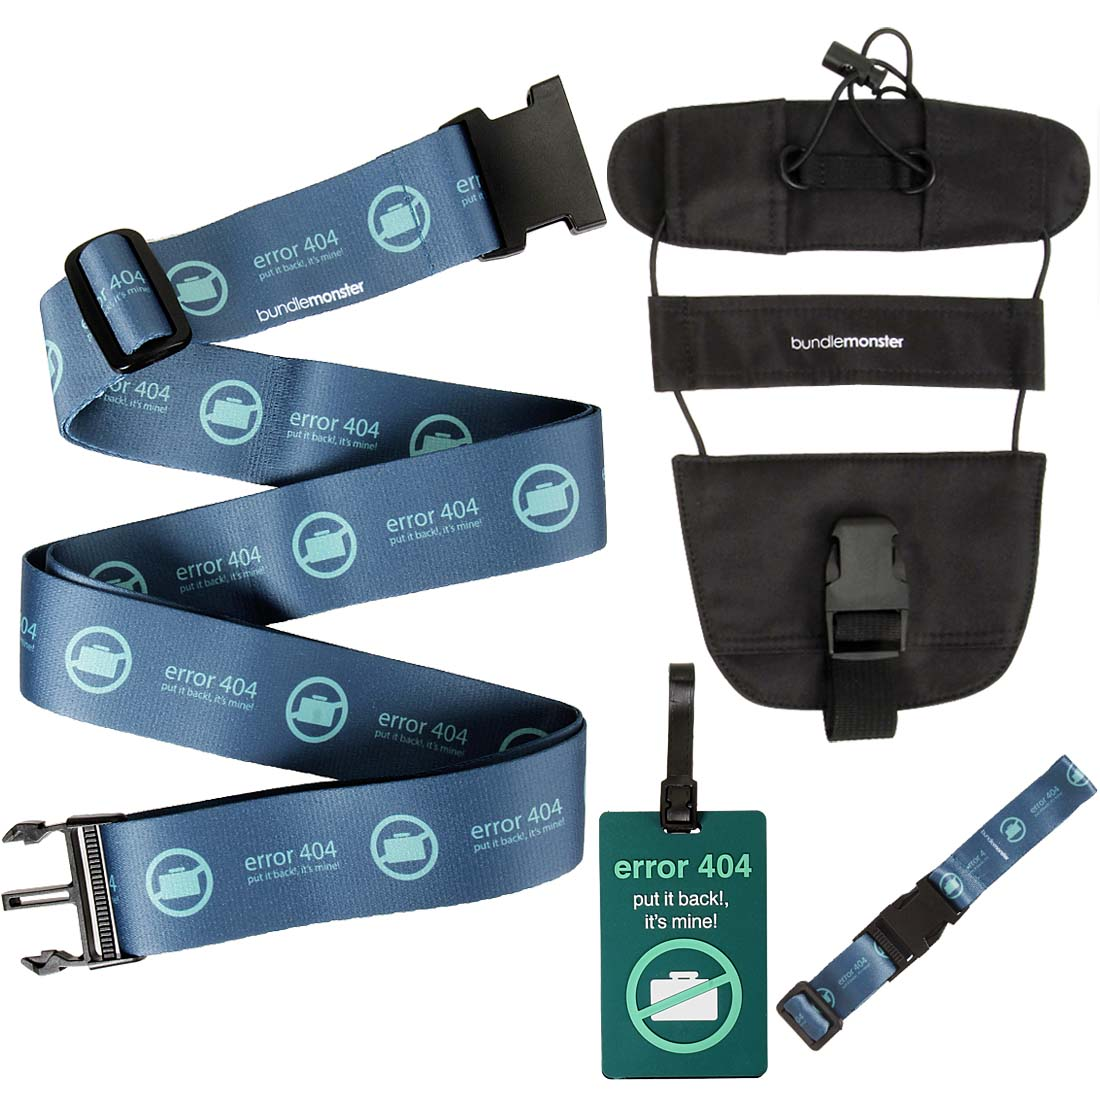 Bundle Monster 4 pc Luggage Strap Bungee ID Tag Travel Accessory Set